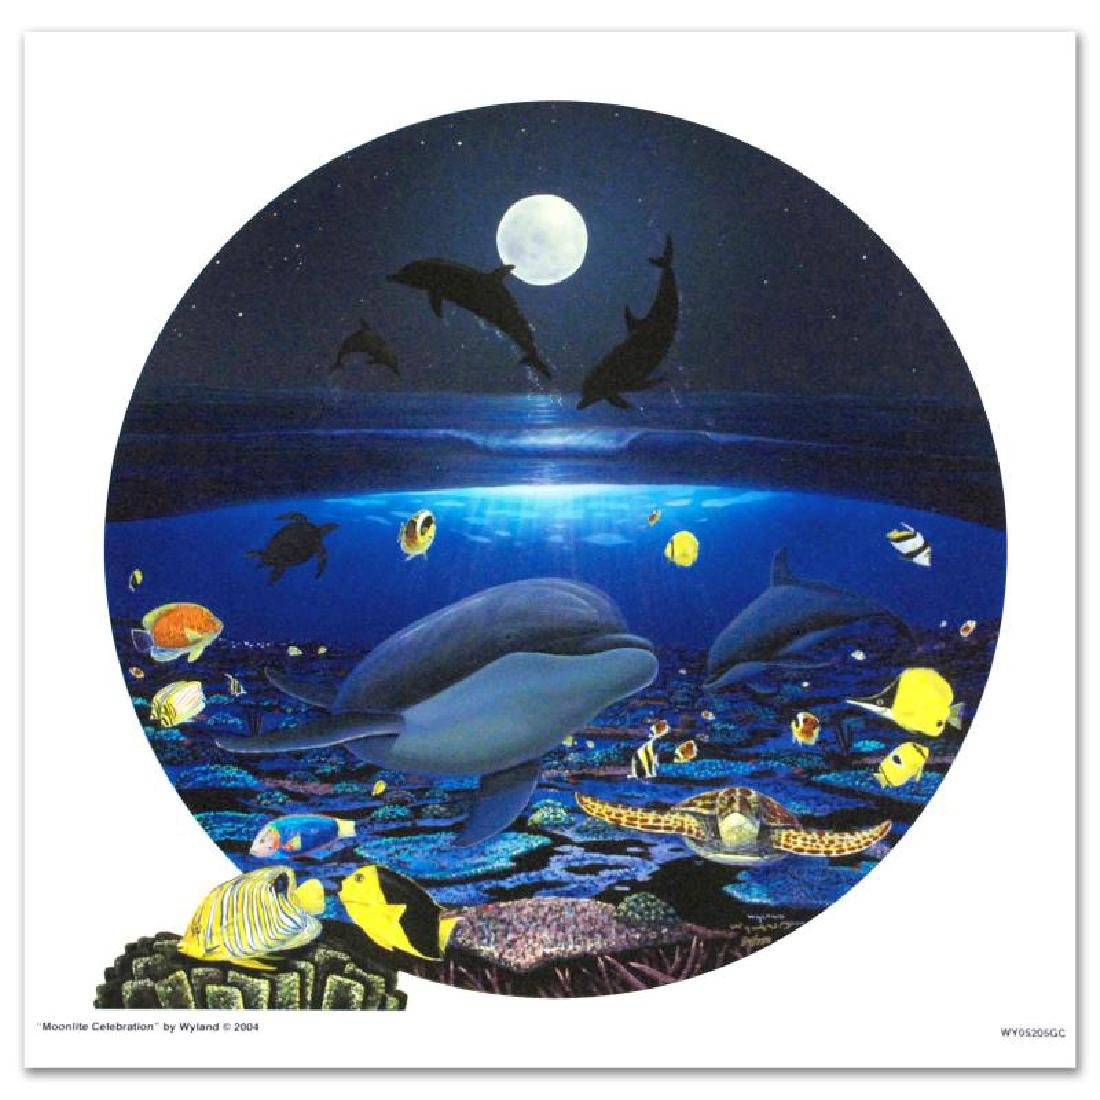 Moonlight Celebration LIMITED EDITION Giclee on Canvas